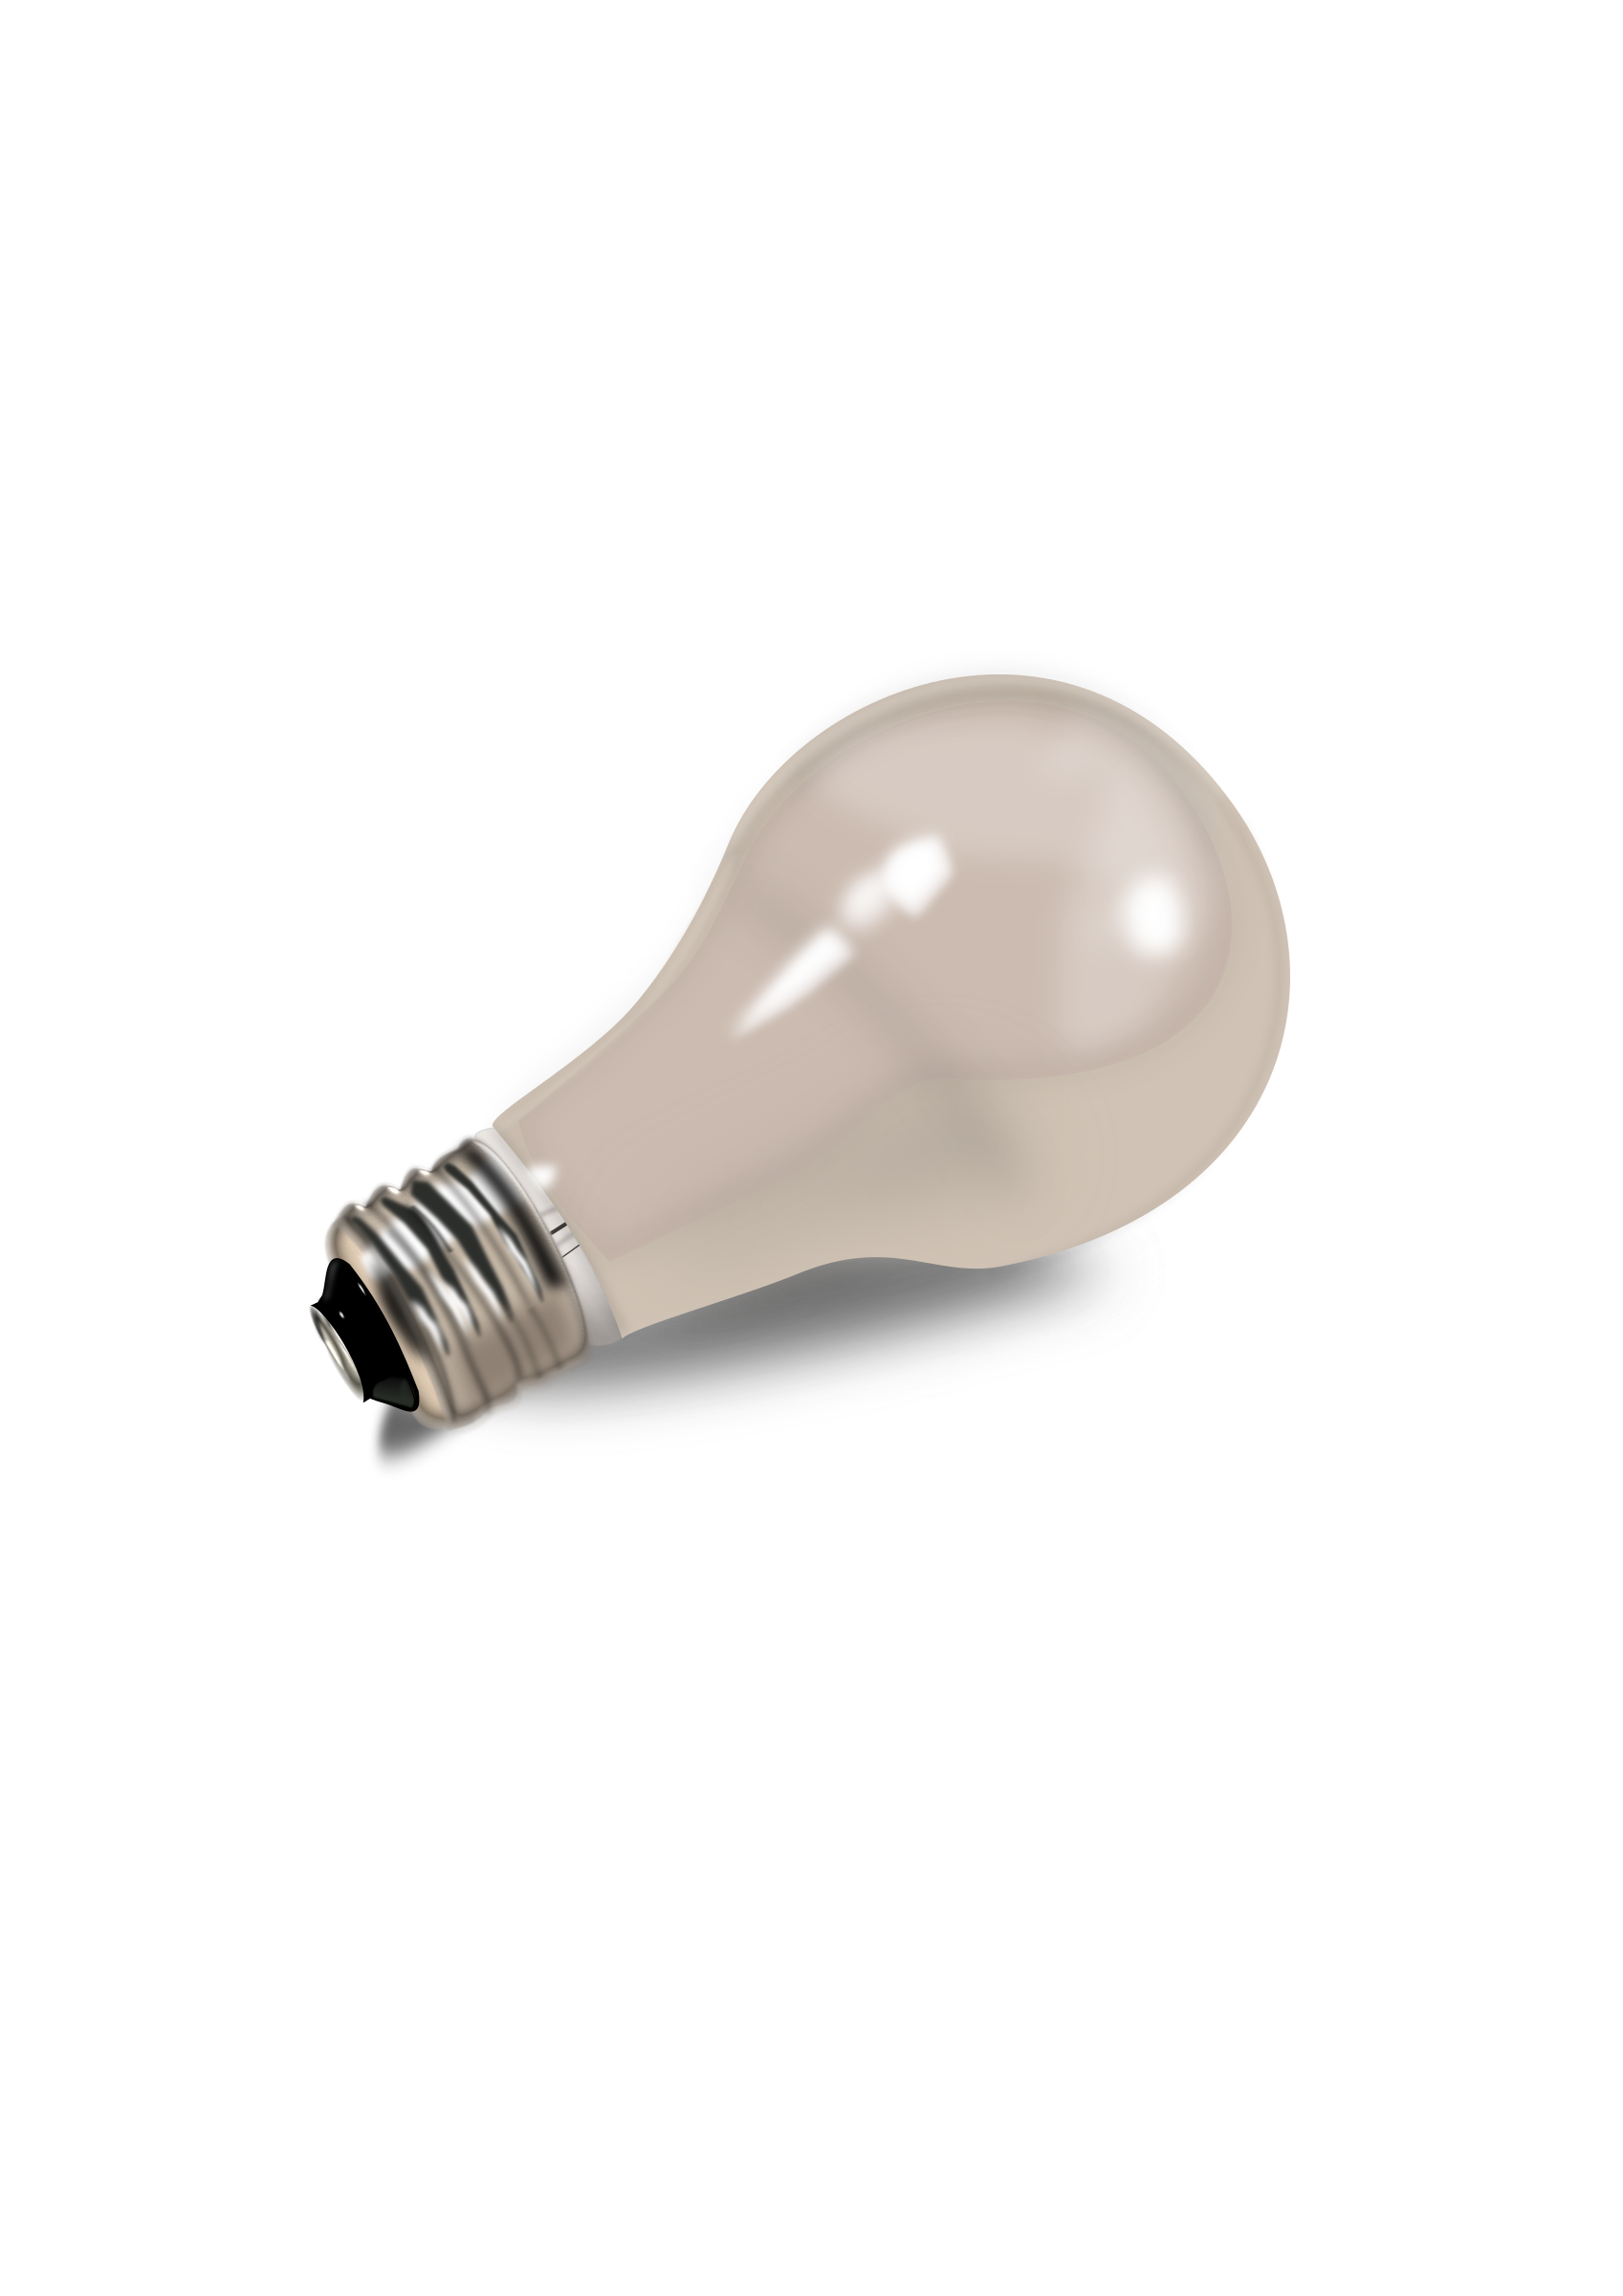 Realistic light bulb lampadina by inkscapeforum.it